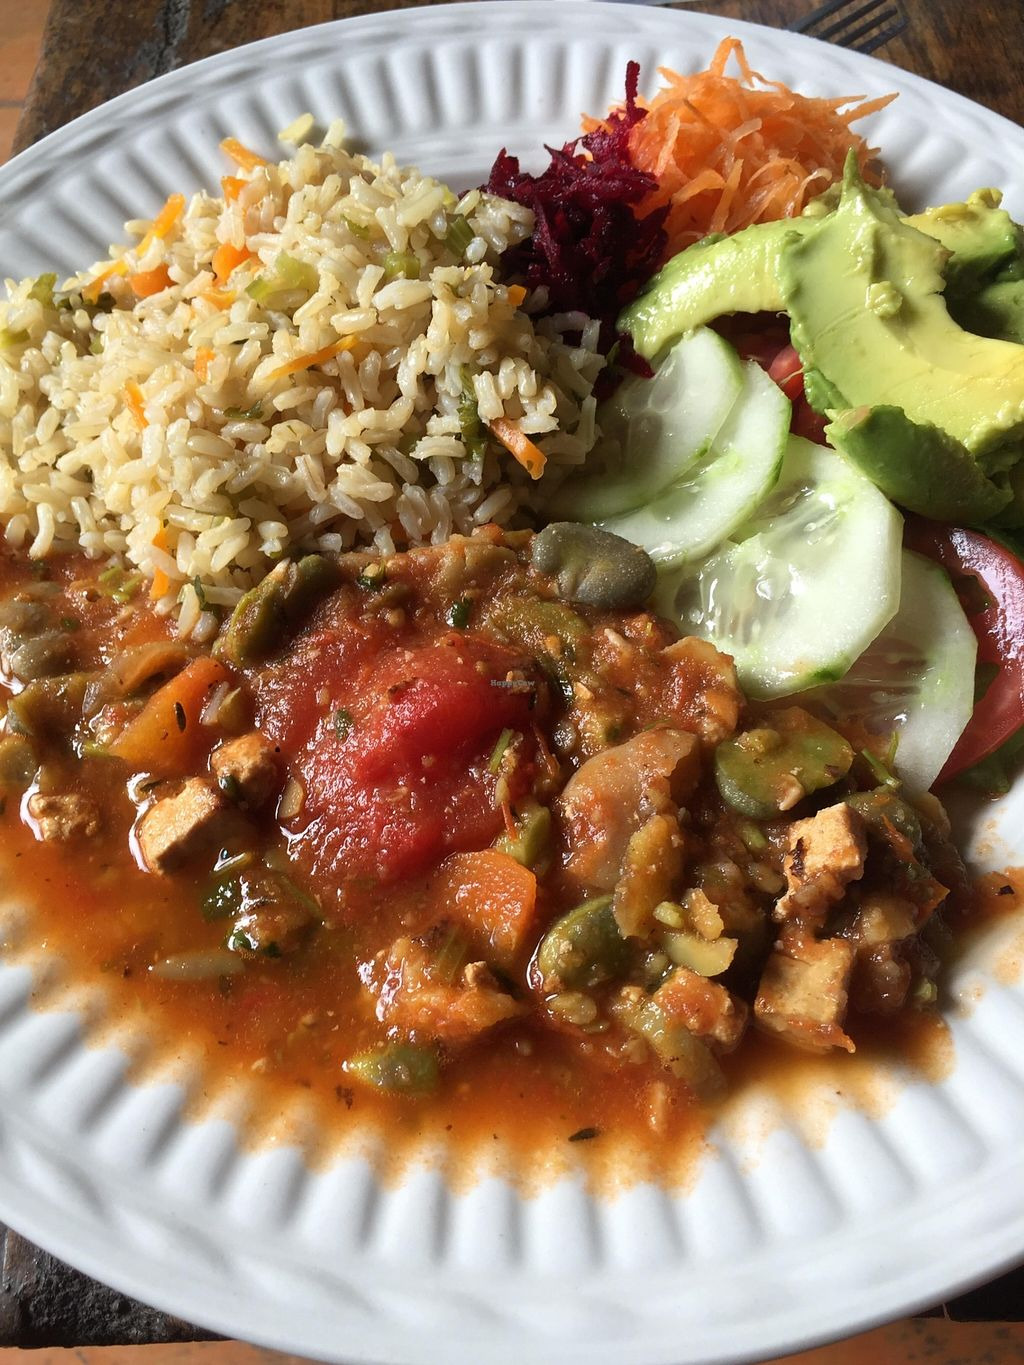 "Photo of La Paz  by <a href=""/members/profile/Emily%20Horne"">Emily Horne</a> <br/>Lima Bean Stew was plate of the day. Delicious! <br/> April 3, 2016  - <a href='/contact/abuse/image/52659/142493'>Report</a>"